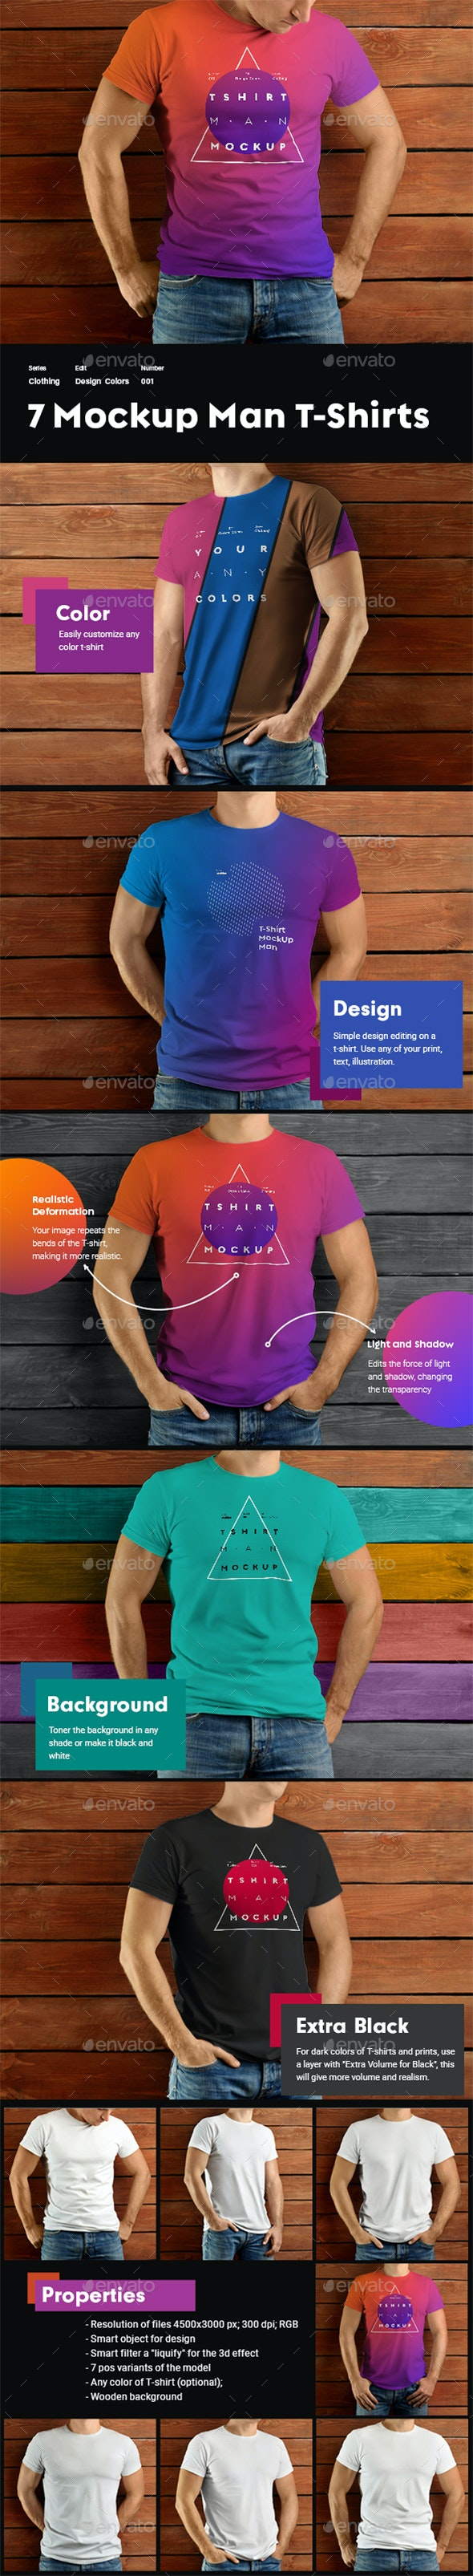 7 MockUps Man T-shirts on Wooden Background - T-shirts Apparel